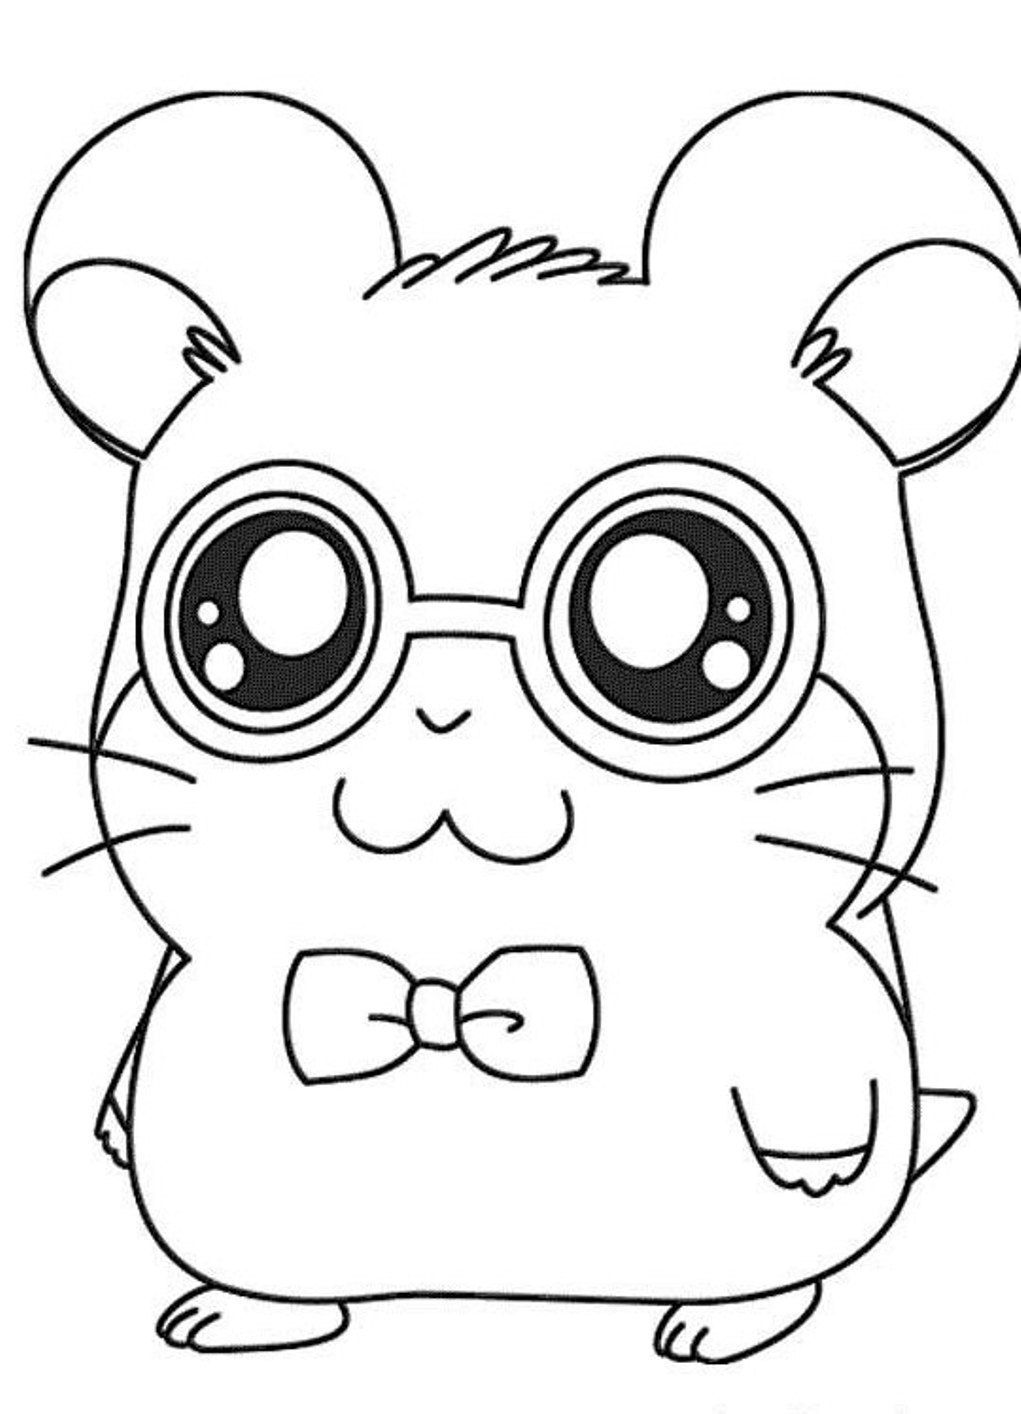 1021x1414 Shocking Hamster Animal Coloring Pages Cute Baby Pics Of Ideas